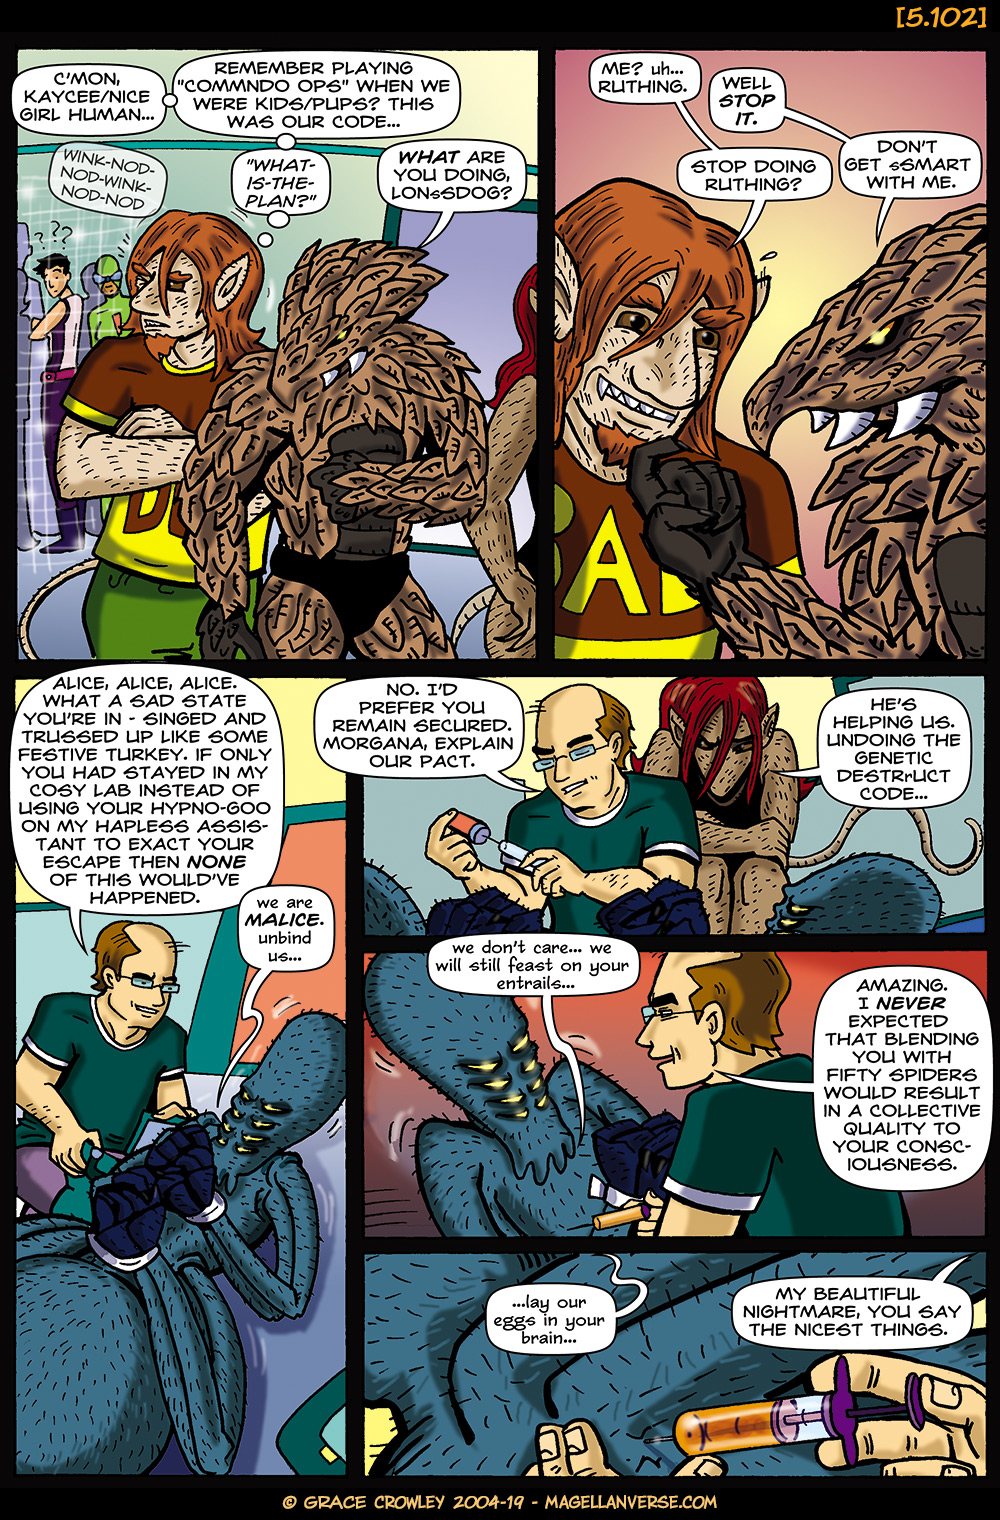 Page 5.102